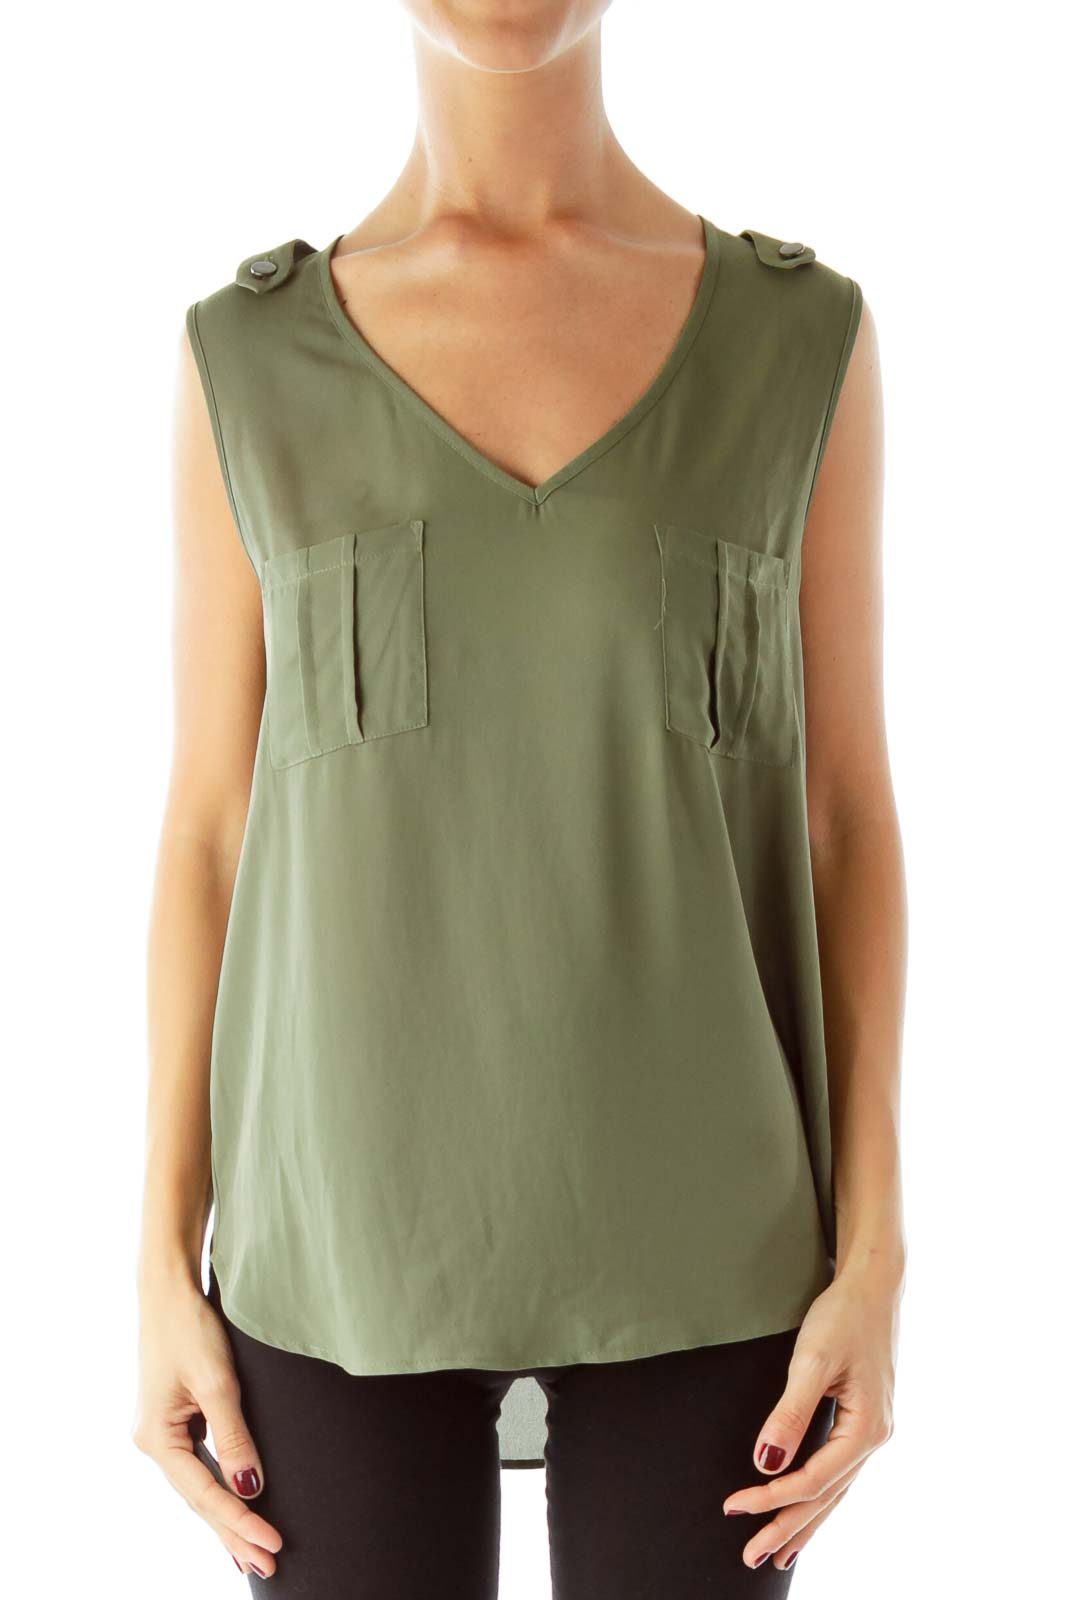 Army Green Sleeveless Blouse Front